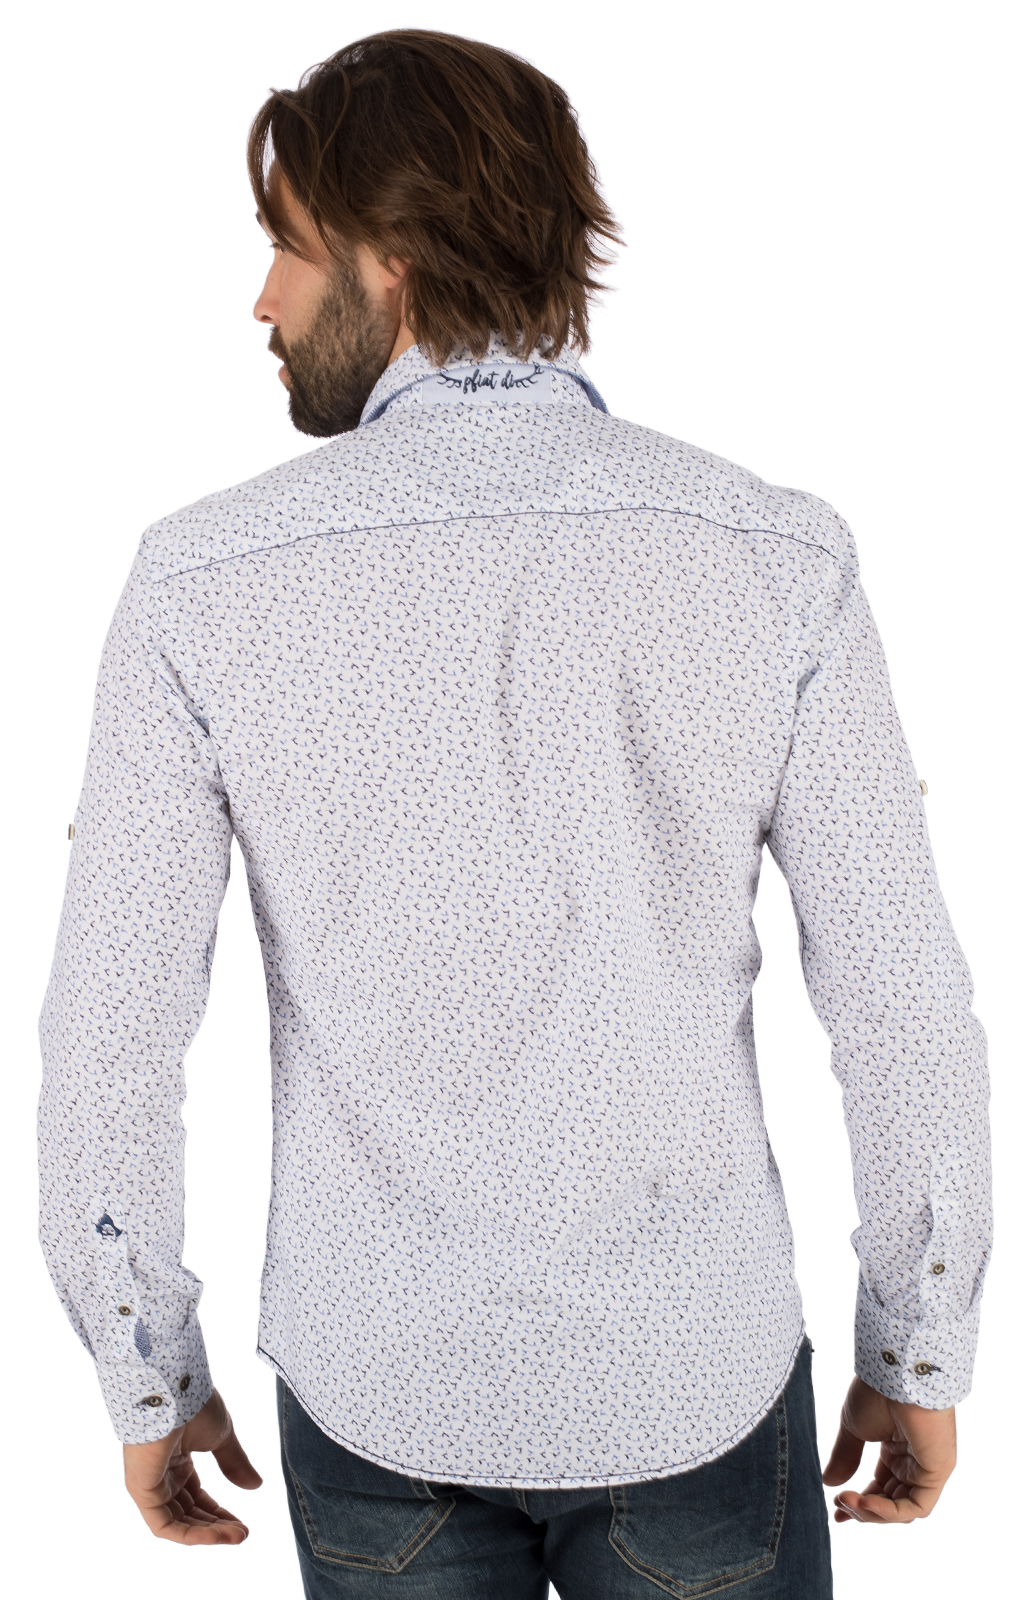 weitere Bilder von German traditional shirt long sleeve FABIUS blue white